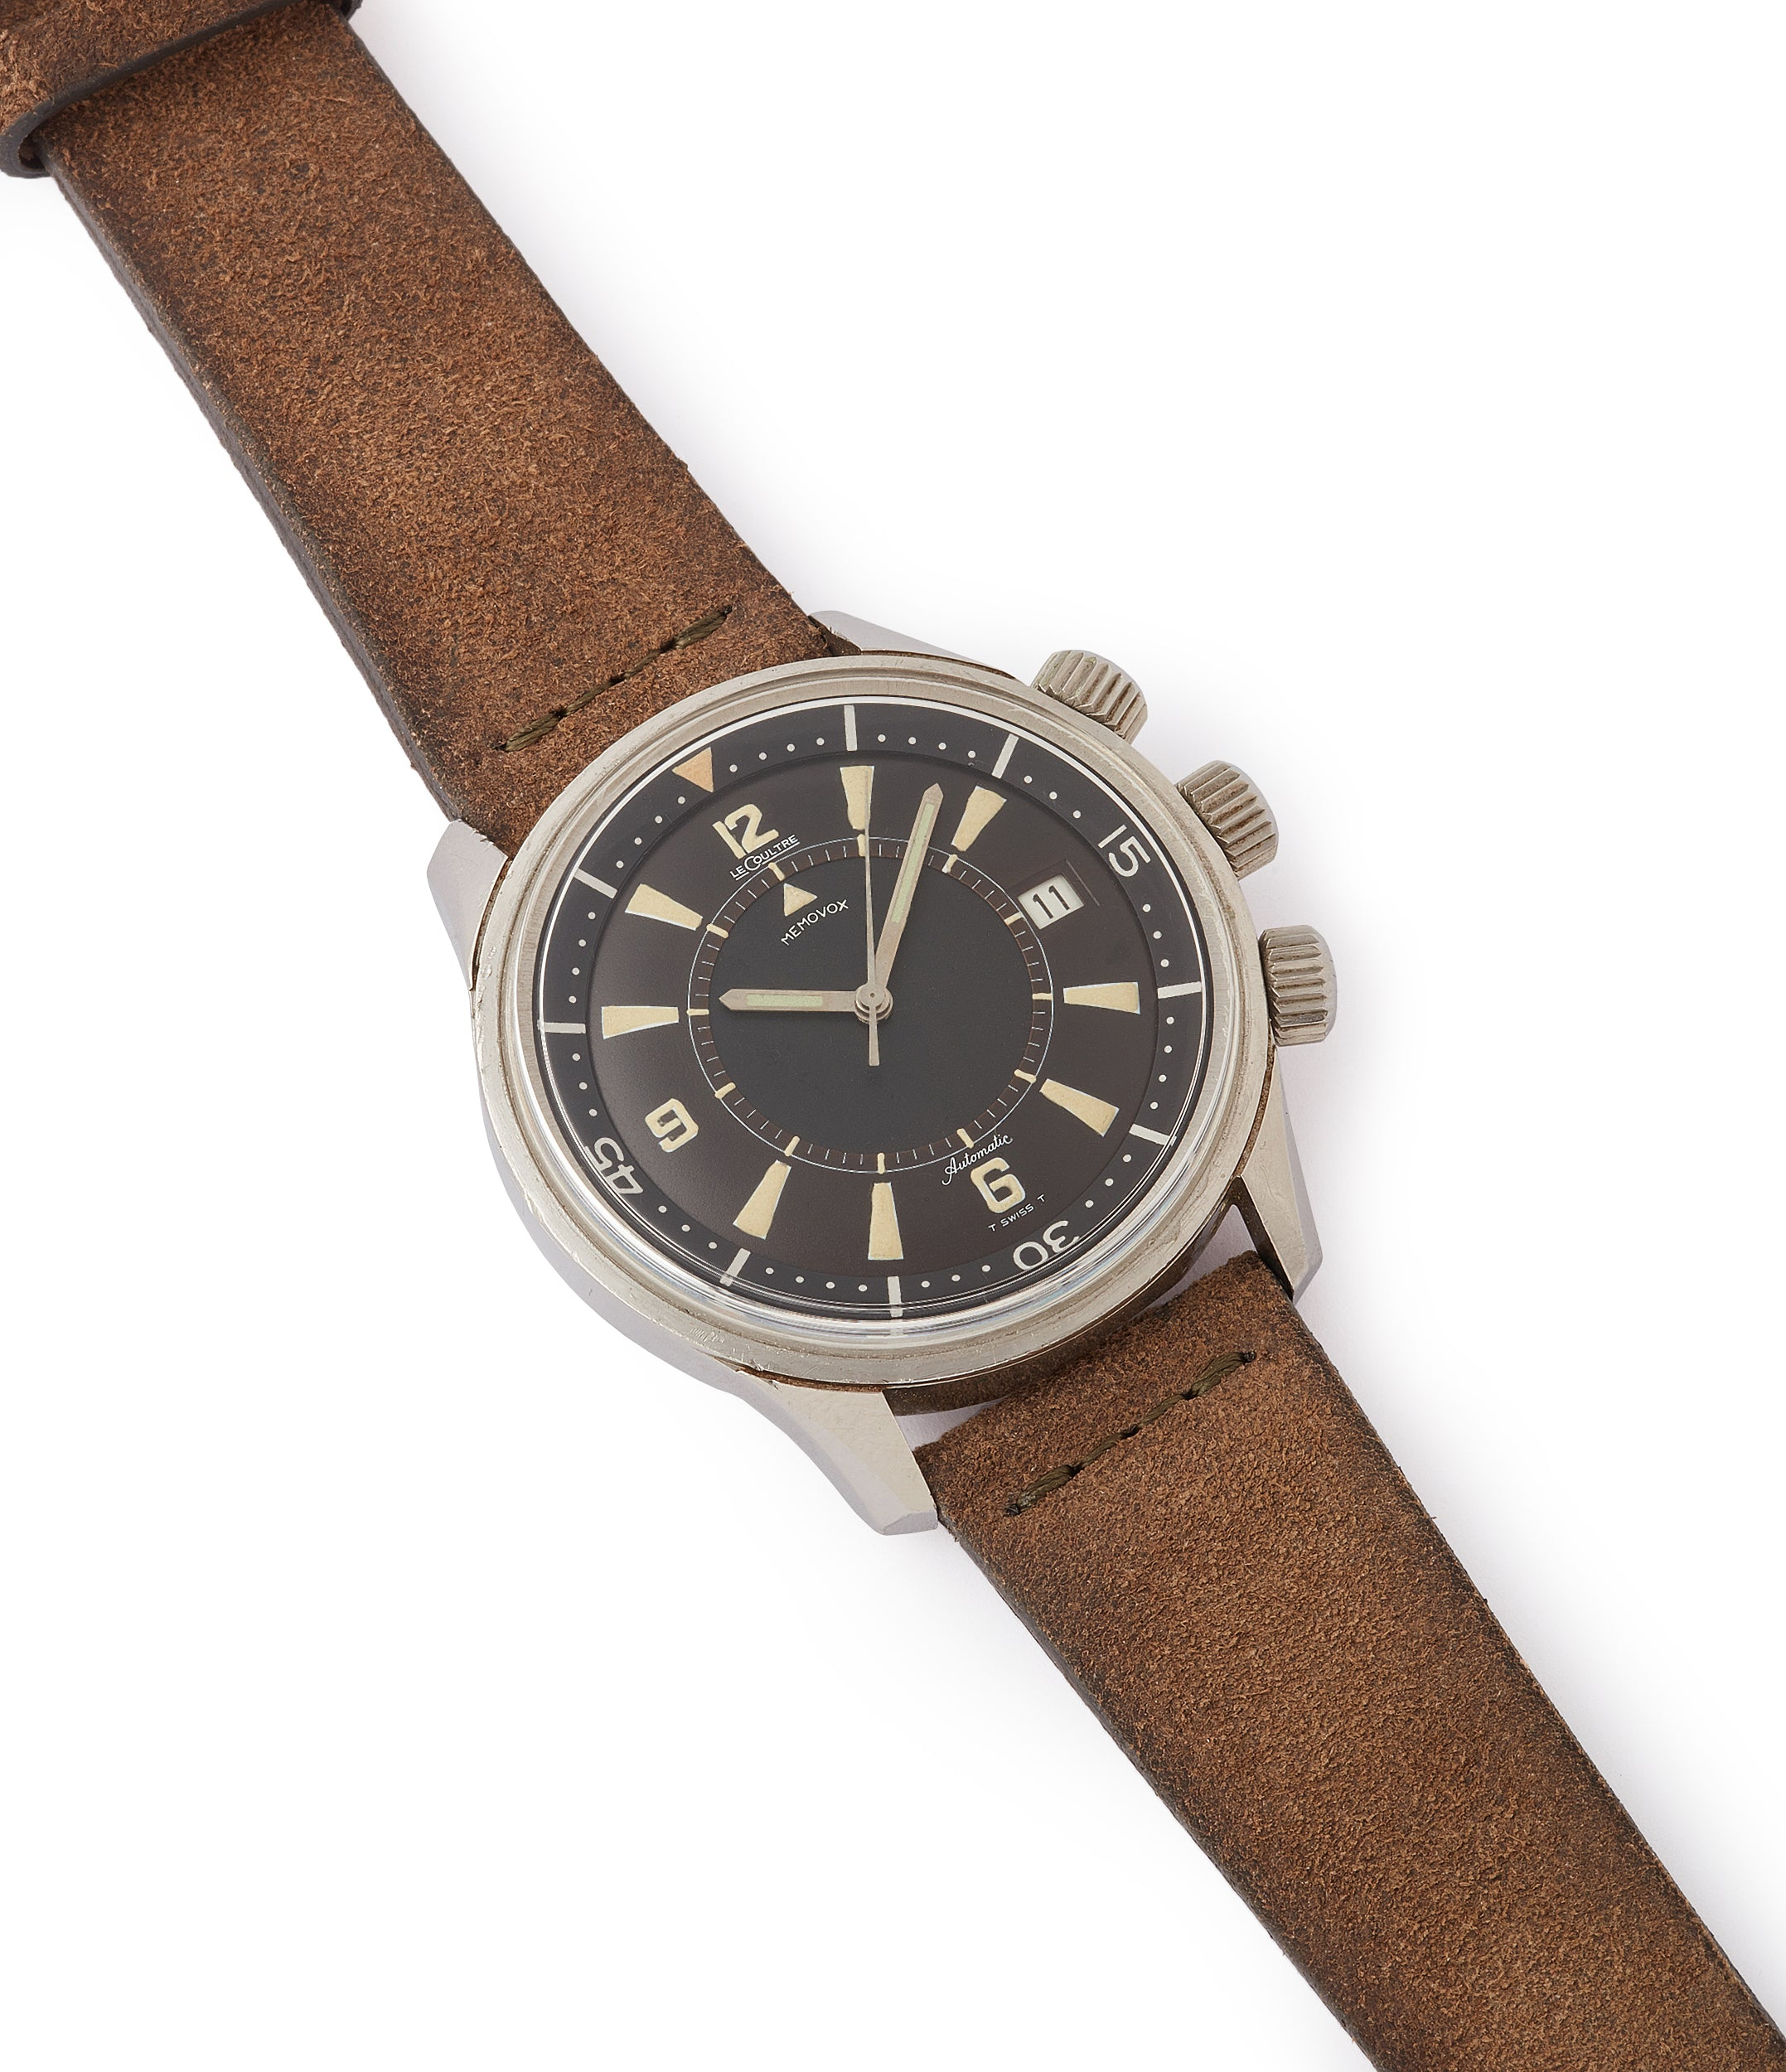 selling vintage Jaeger-LeCoultre Memovox Polaris E859 Cal. K825 alarm diving watch for sale at A Collected Man London UK specialist of rare watches